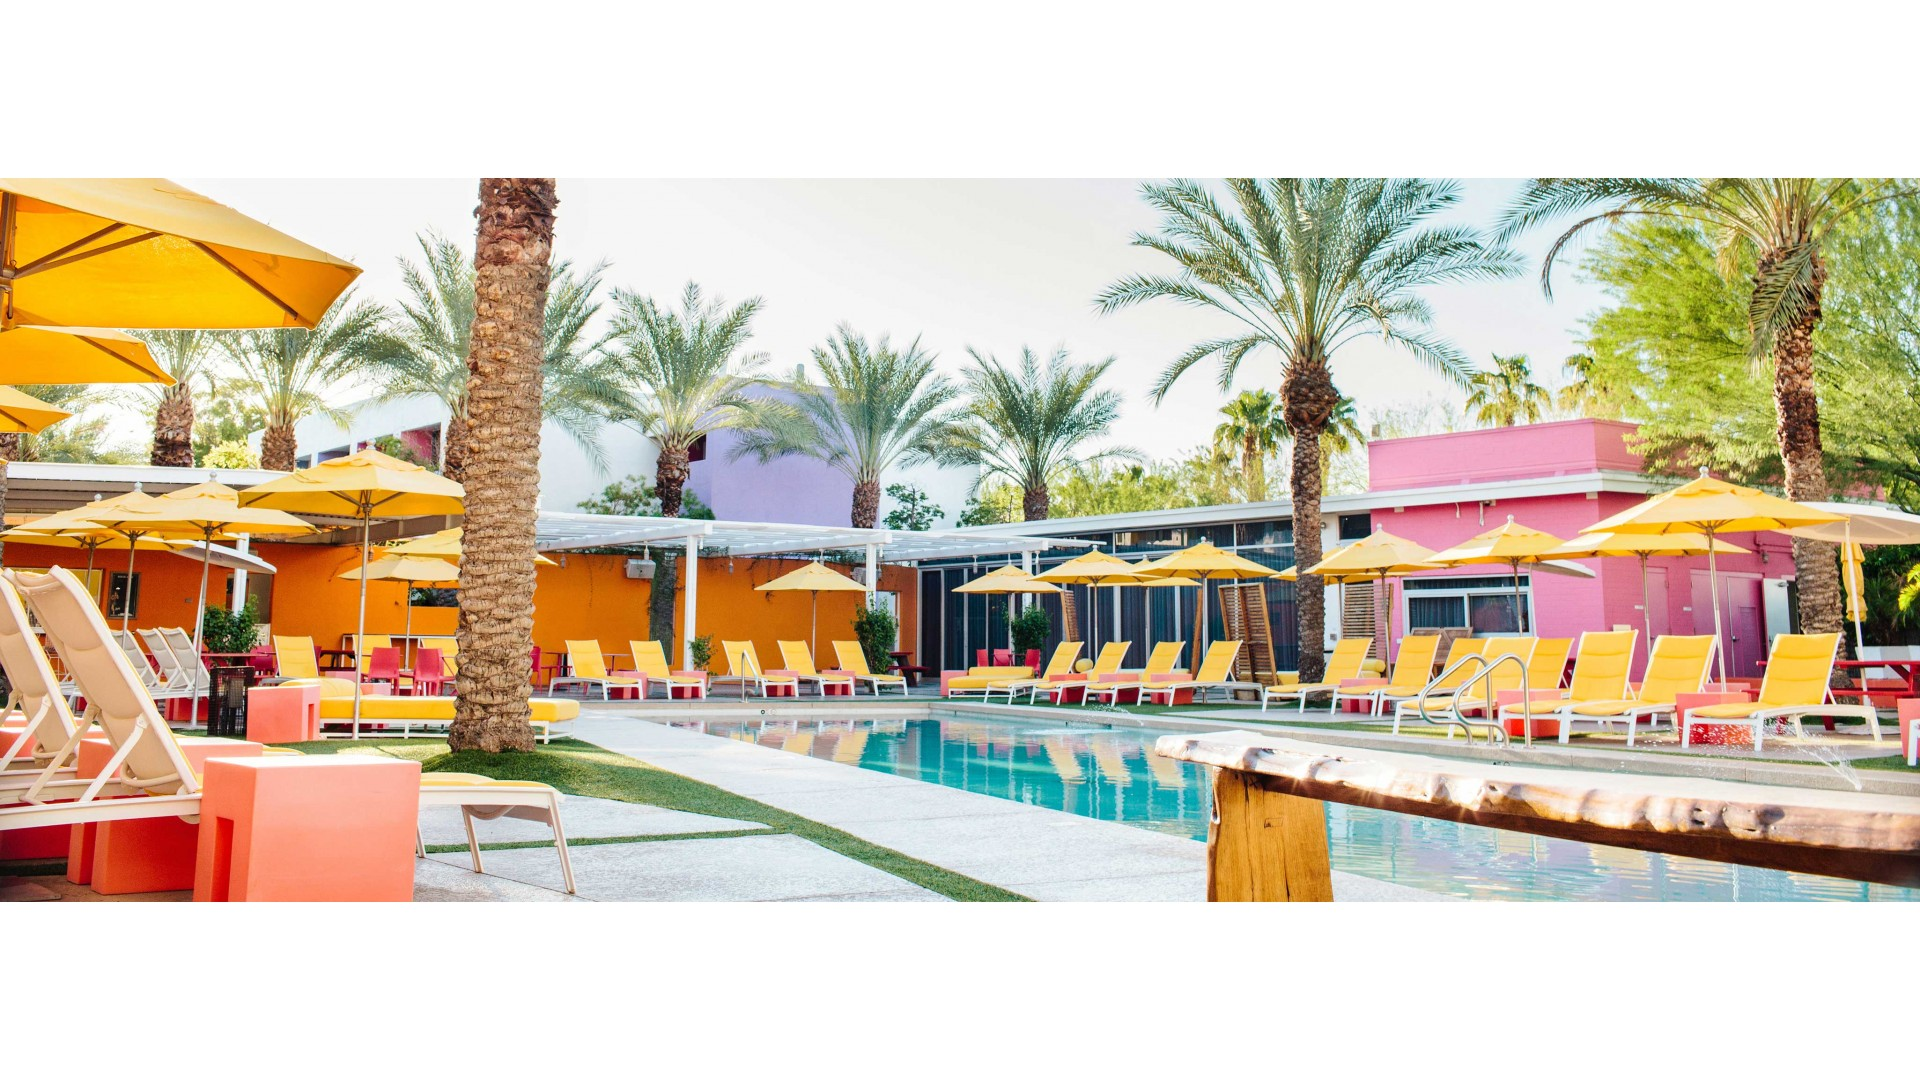 Saguaro Hotel Scottsdale Reviews